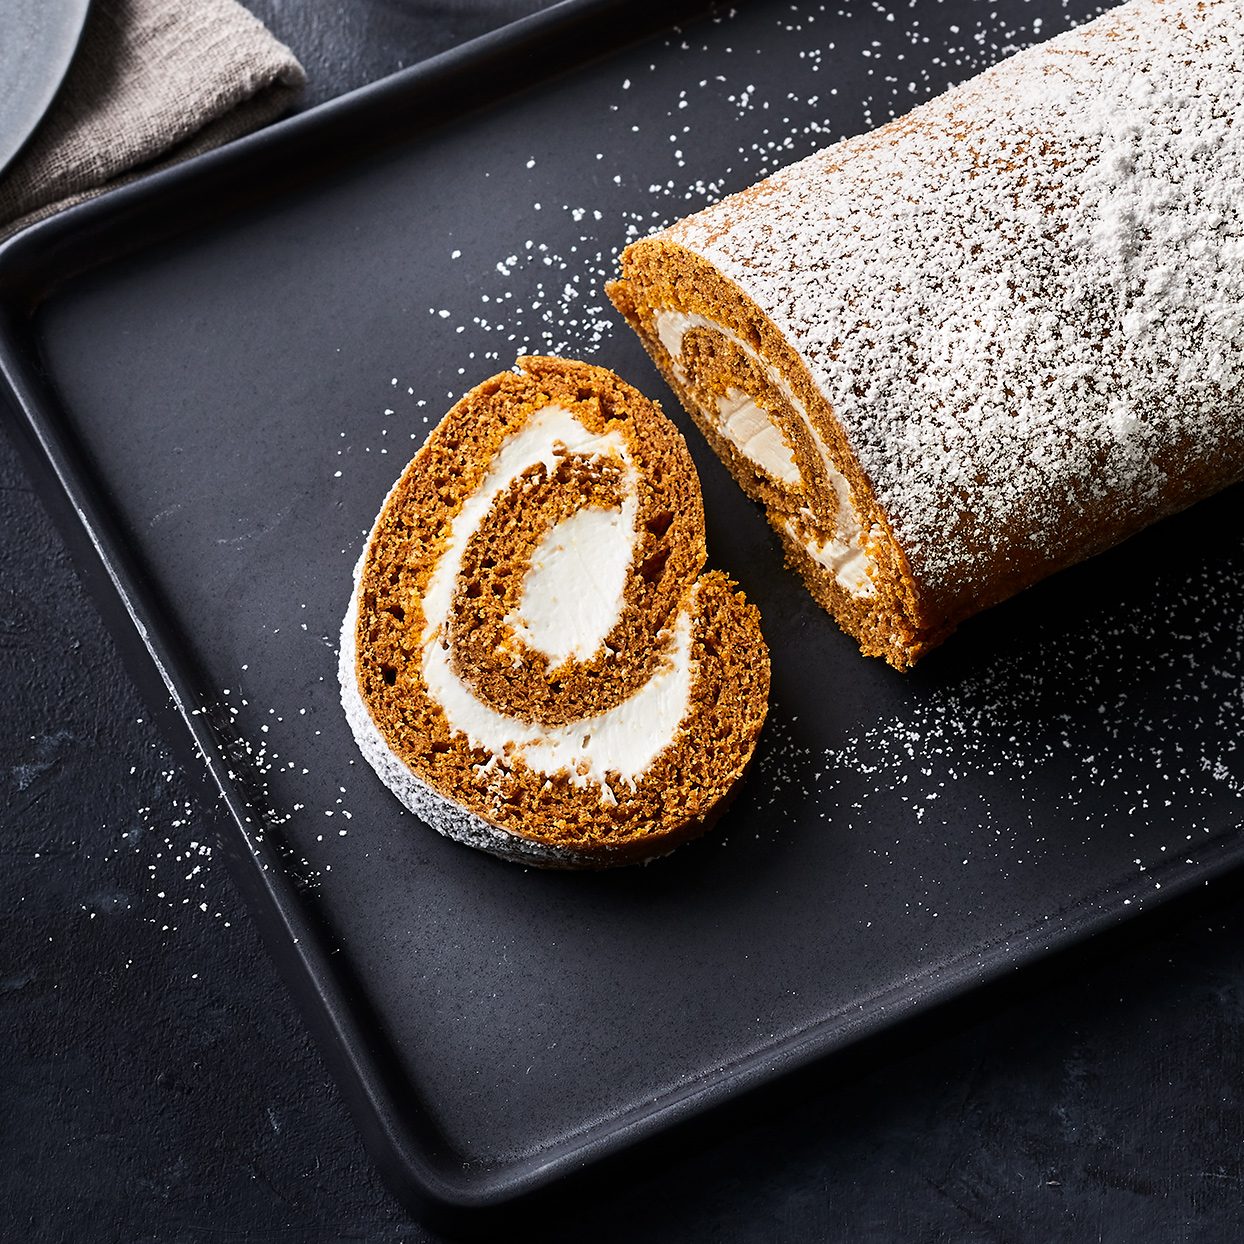 Deliciously warm spiced cake layers are rolled together with slightly tangy cream cheese frosting. This pumpkin jelly roll tastes decadent, but each serving is under 200 calories and has less than 20 grams of sugar. Don't be intimidated by this jelly roll--so long as you work quickly while the cake is warm, it's hard to mess it up or crack the cake.